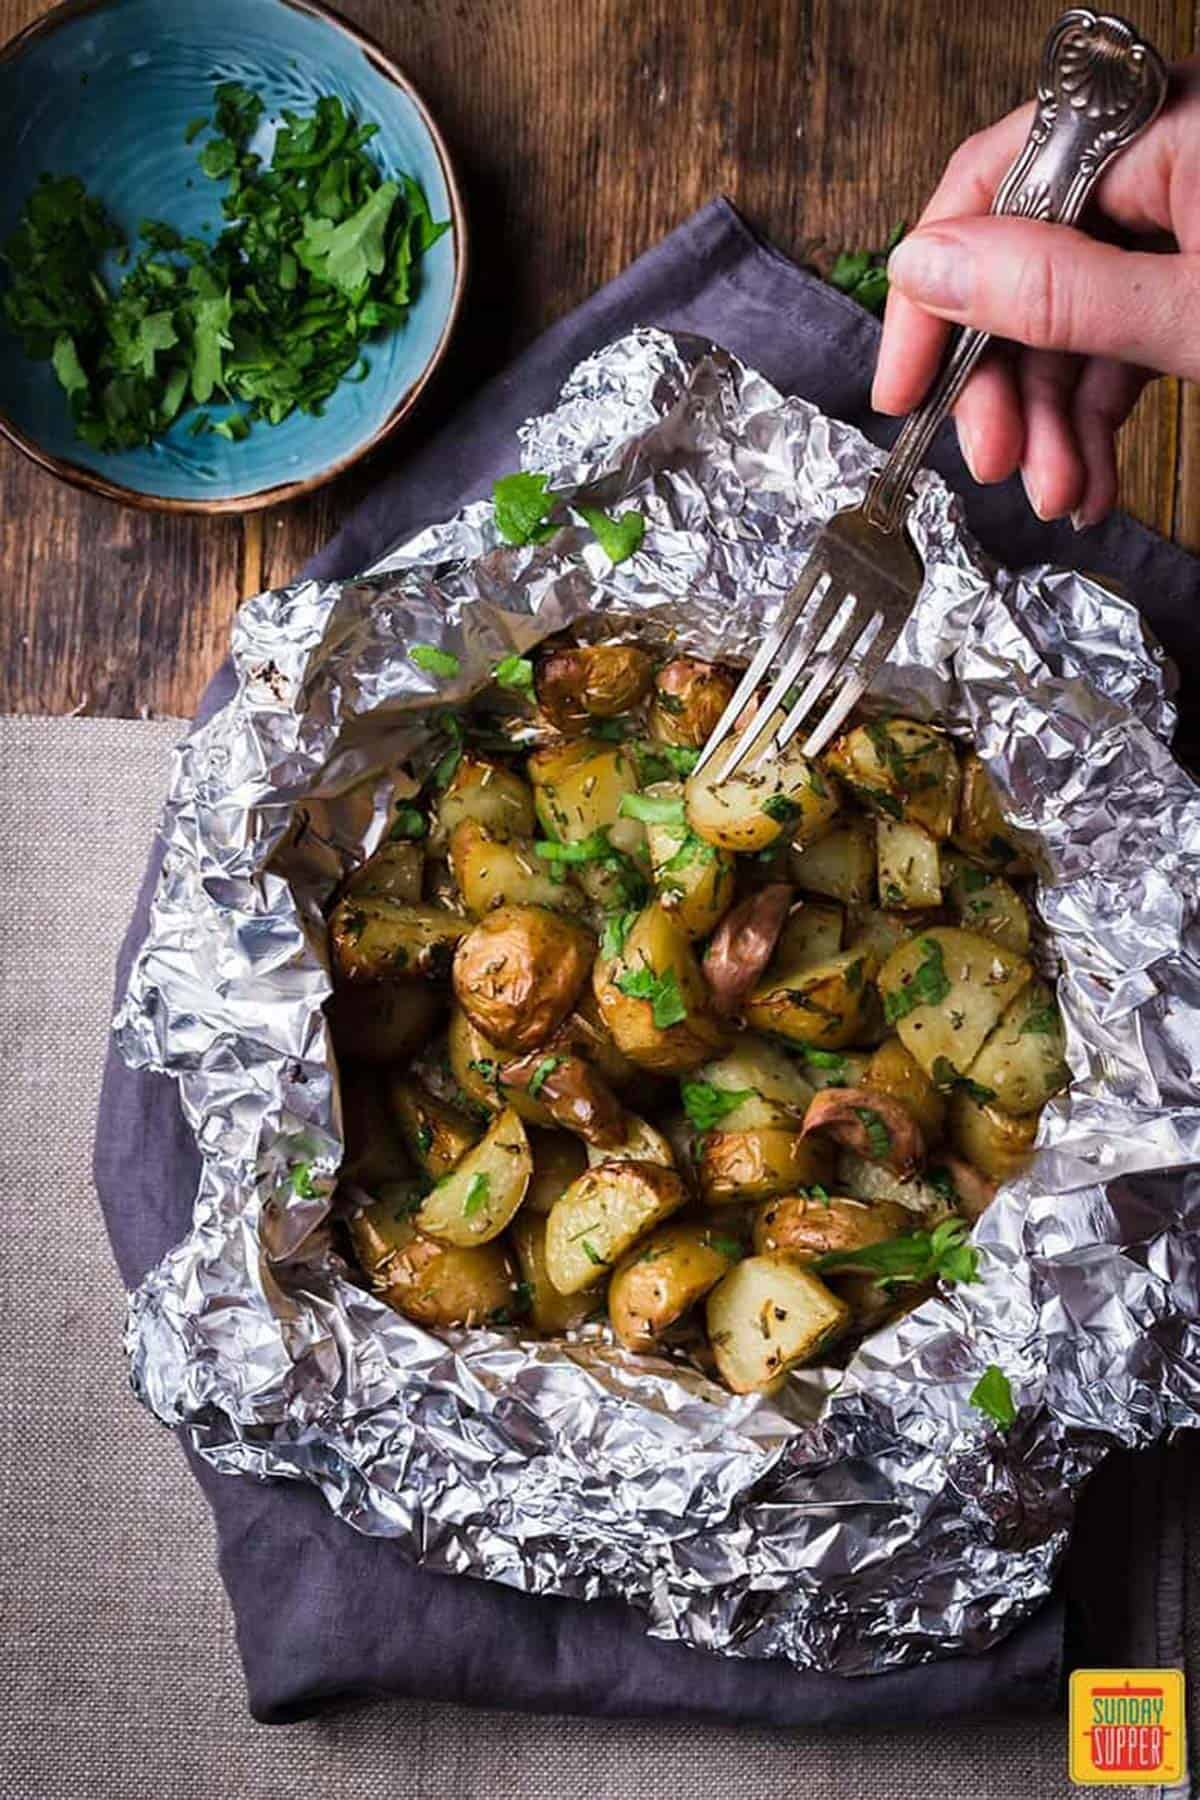 Holding a fork through the foil pack potatoes on a wooden table